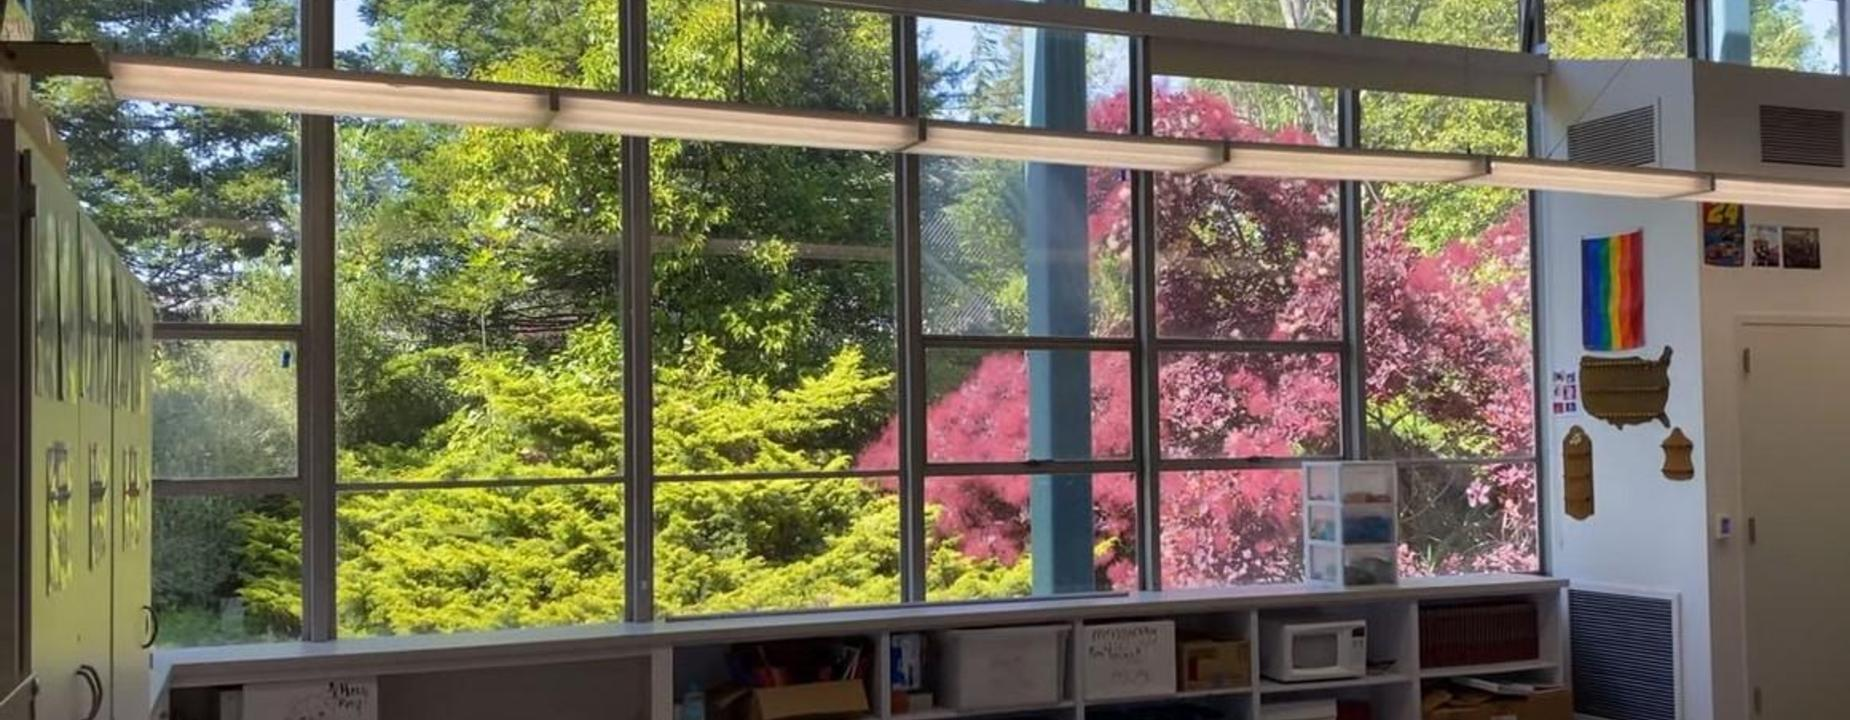 View from a classroom